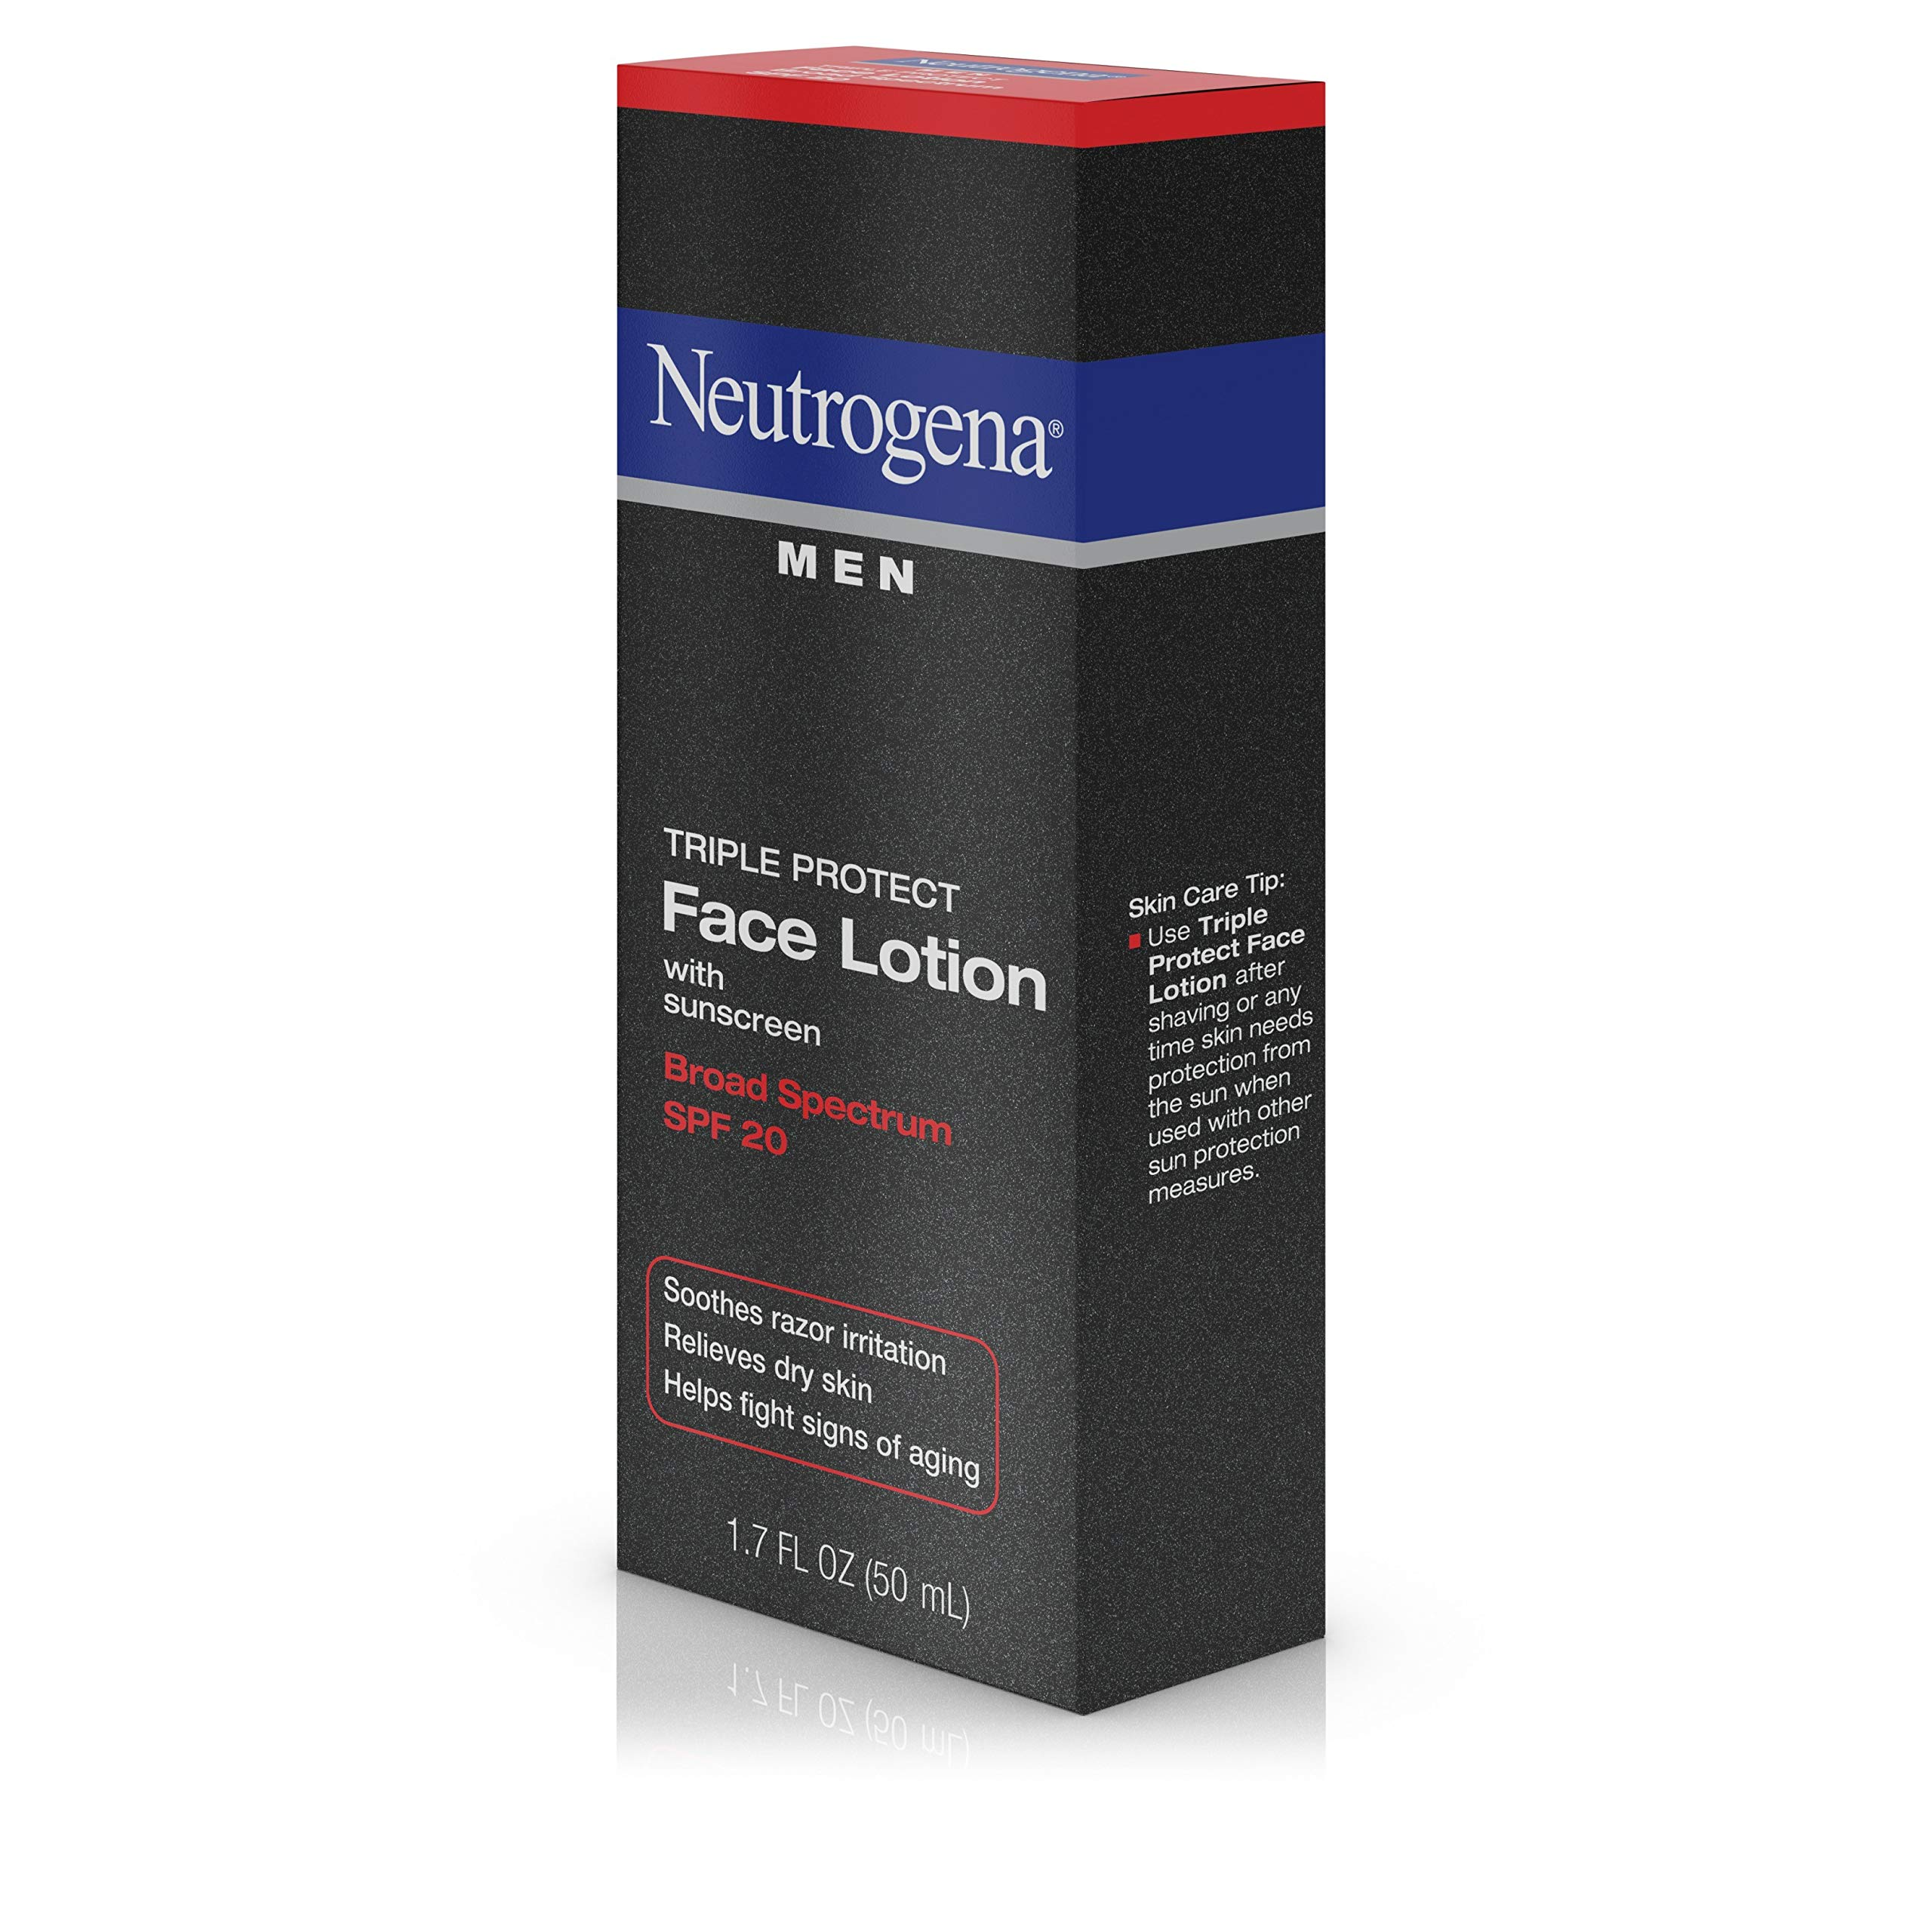 Neutrogena Triple Protect Men's Daily Face Lotion with Broad Spectrum SPF 20 Sunscreen, Moisturizer to Fight Aging Signs, Soothe Razor Irritation & Relieve Dry Skin, 1.7 fl. Oz (Pack of 2) by Neutrogena (Image #9)